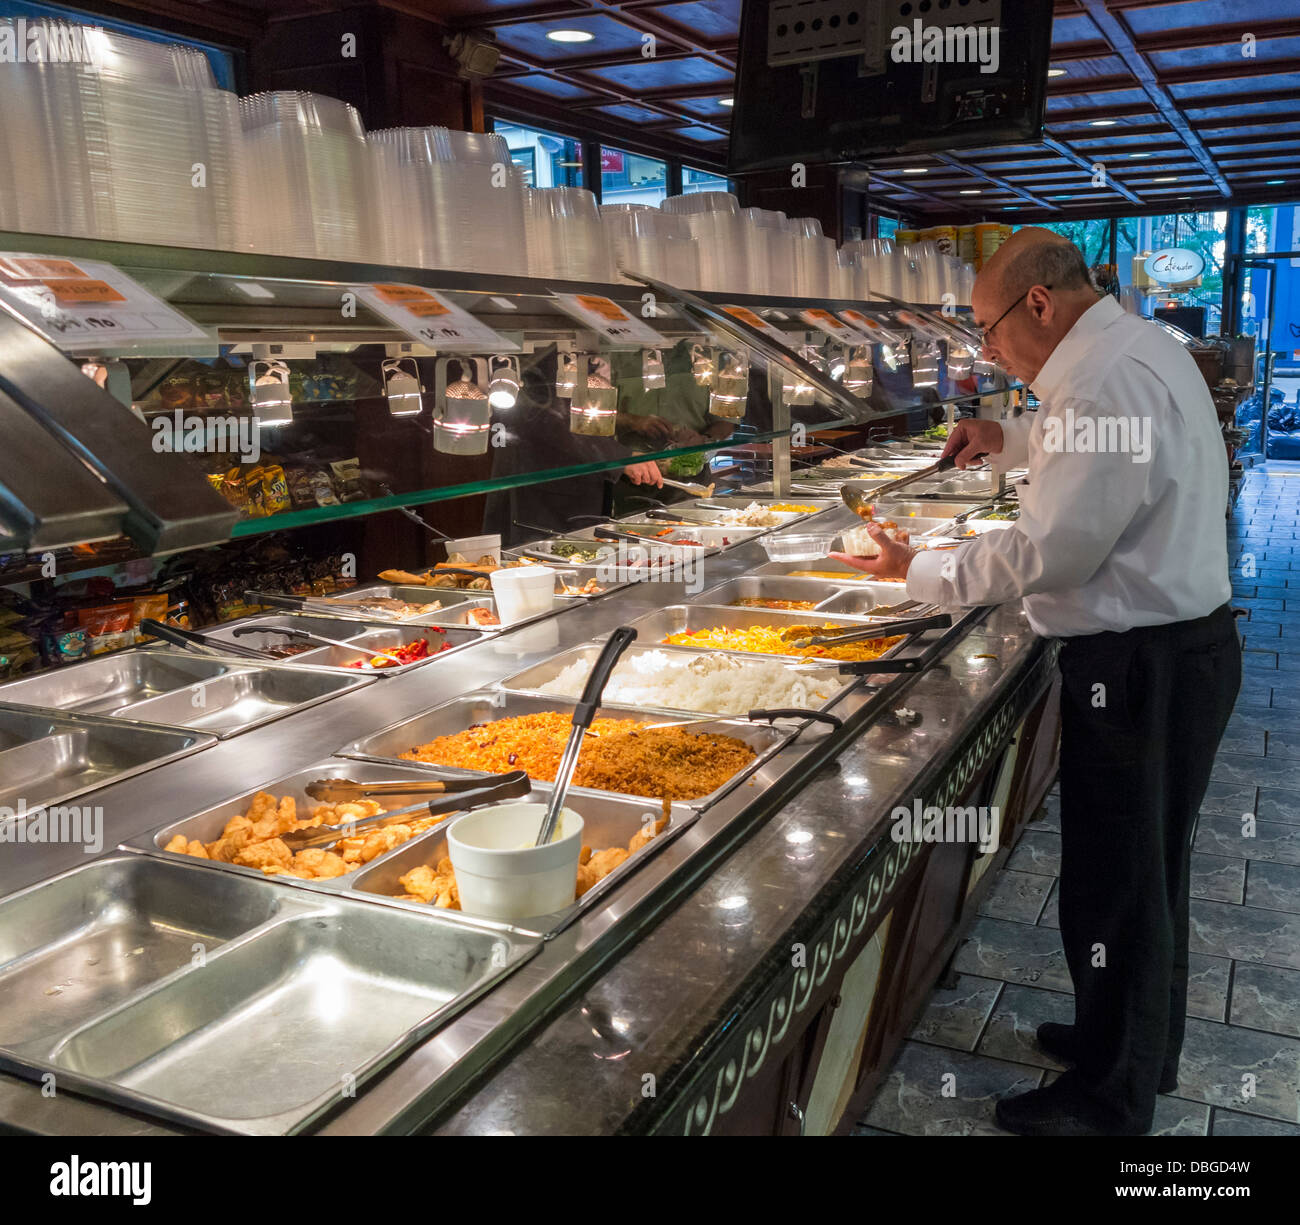 A takeaway deli shop in New York City - Stock Image